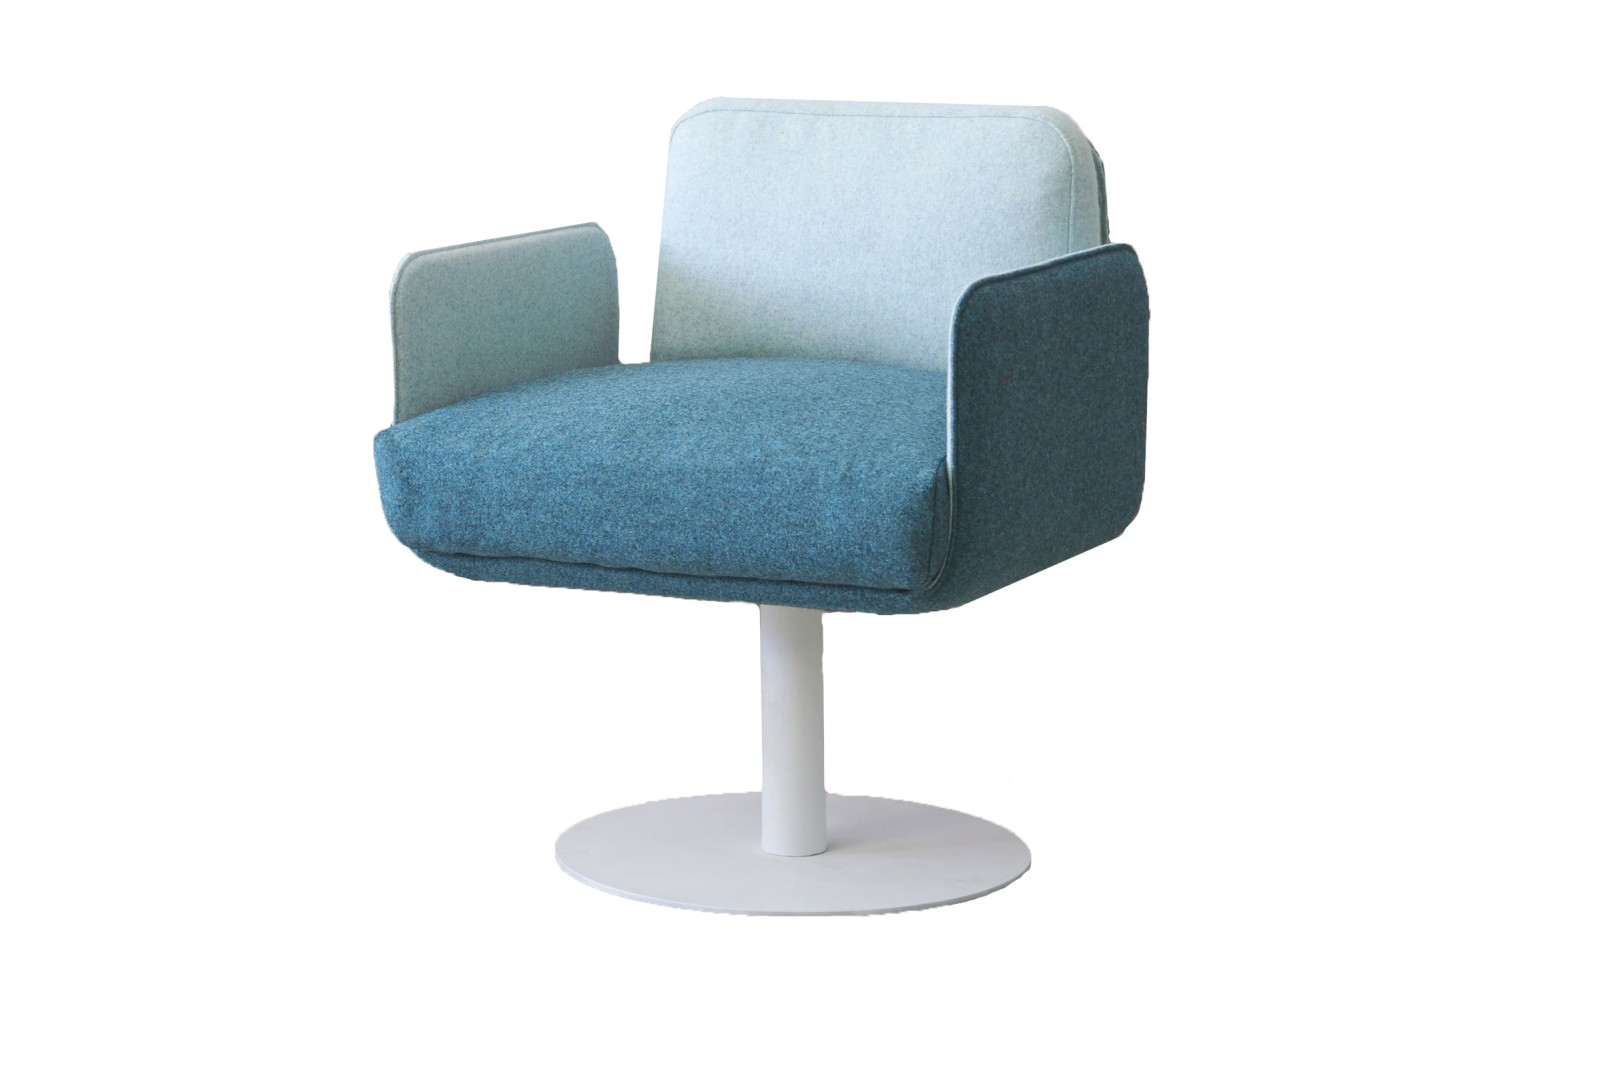 HM10C FLIX Swivel Arm Chair Kvadrat Steelcut 2 White Base